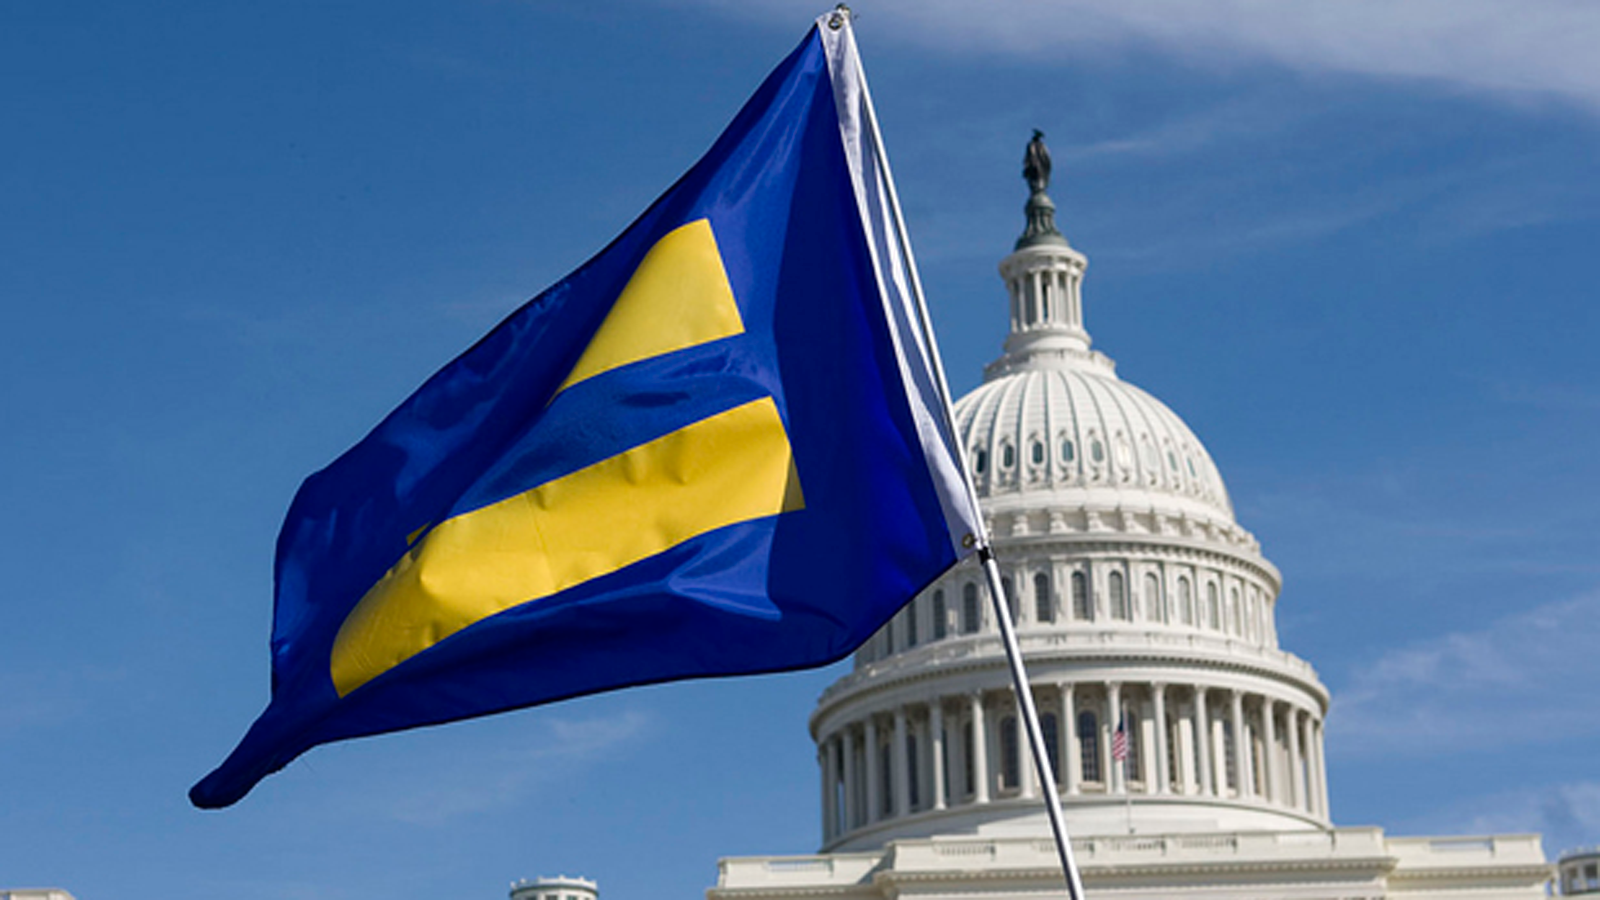 Congressional Committee Passes Resolution Condemning Anti-LGBTQ Violence in Chechnya